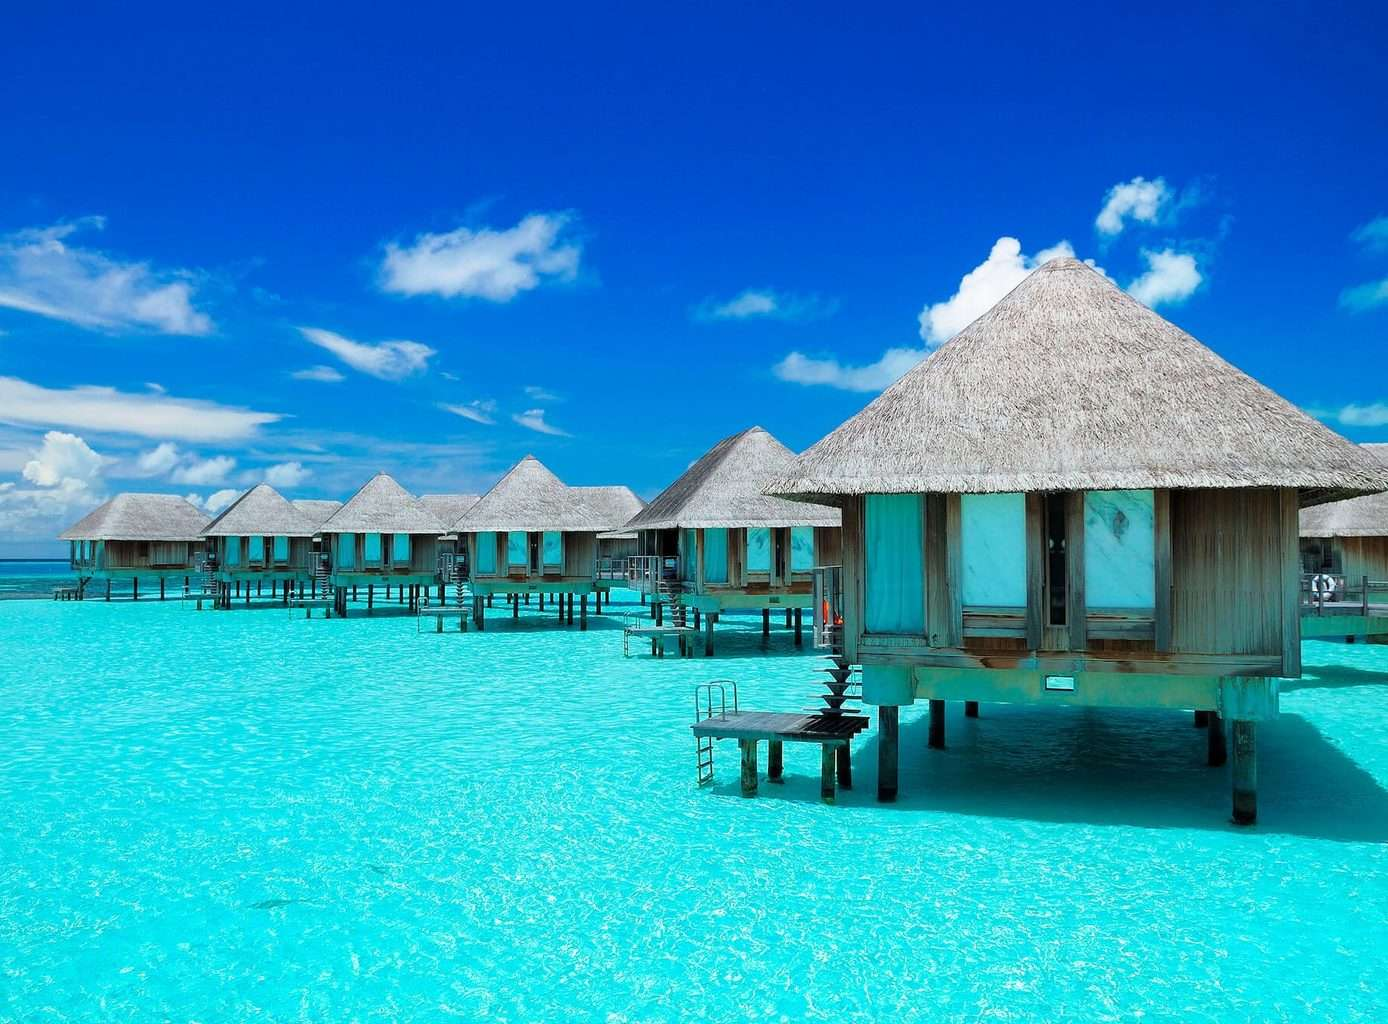 Asia Luxury Holidays and Indiann Ocean Calm, Overwater bungalow blue sea and sky view